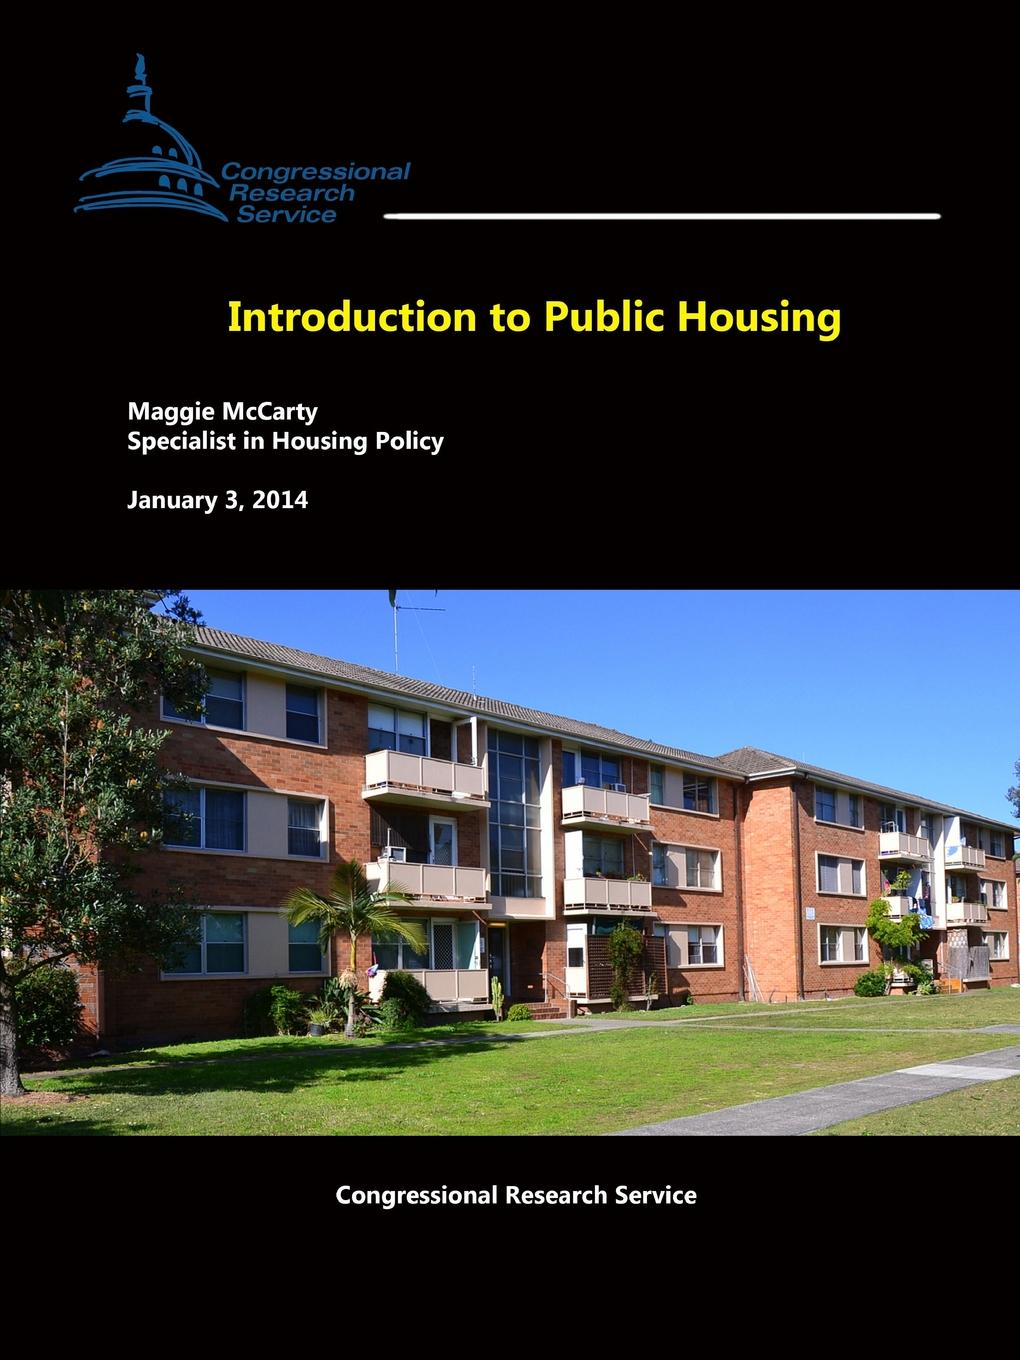 цена на Maggie McCarty, Congressional Research Service Introduction to Public Housing